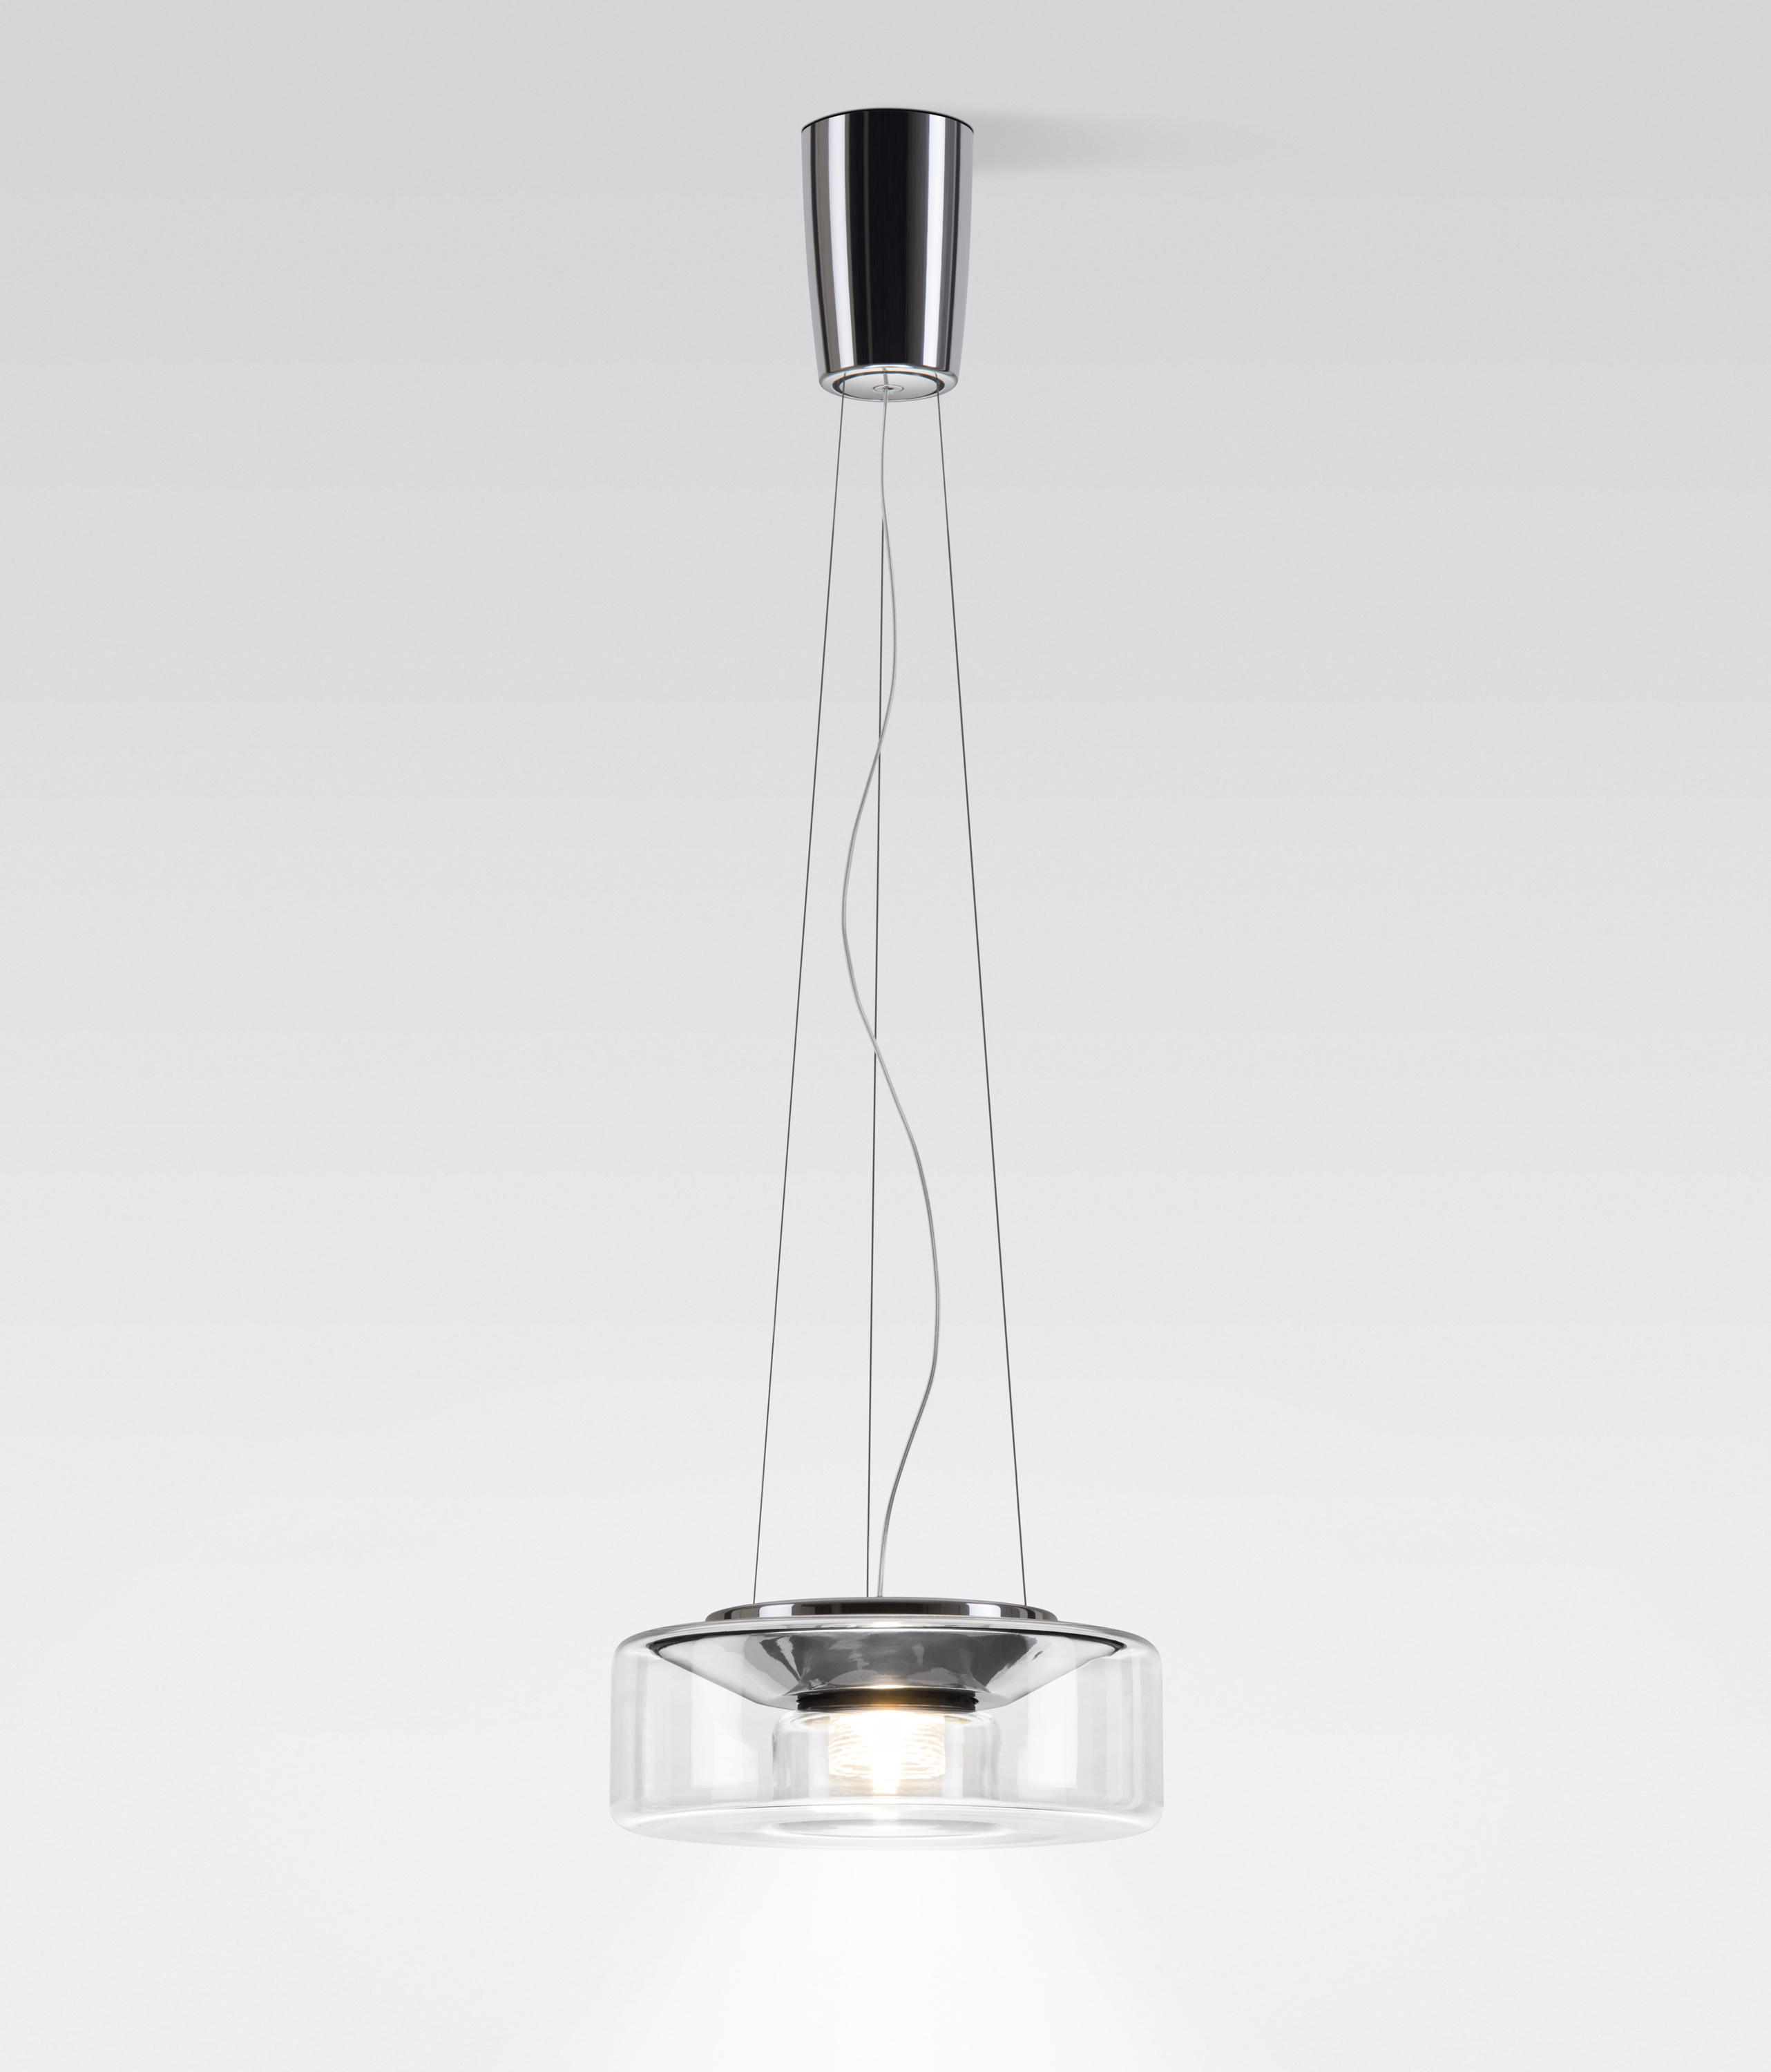 curling suspension clear rope general lighting from architonic. Black Bedroom Furniture Sets. Home Design Ideas